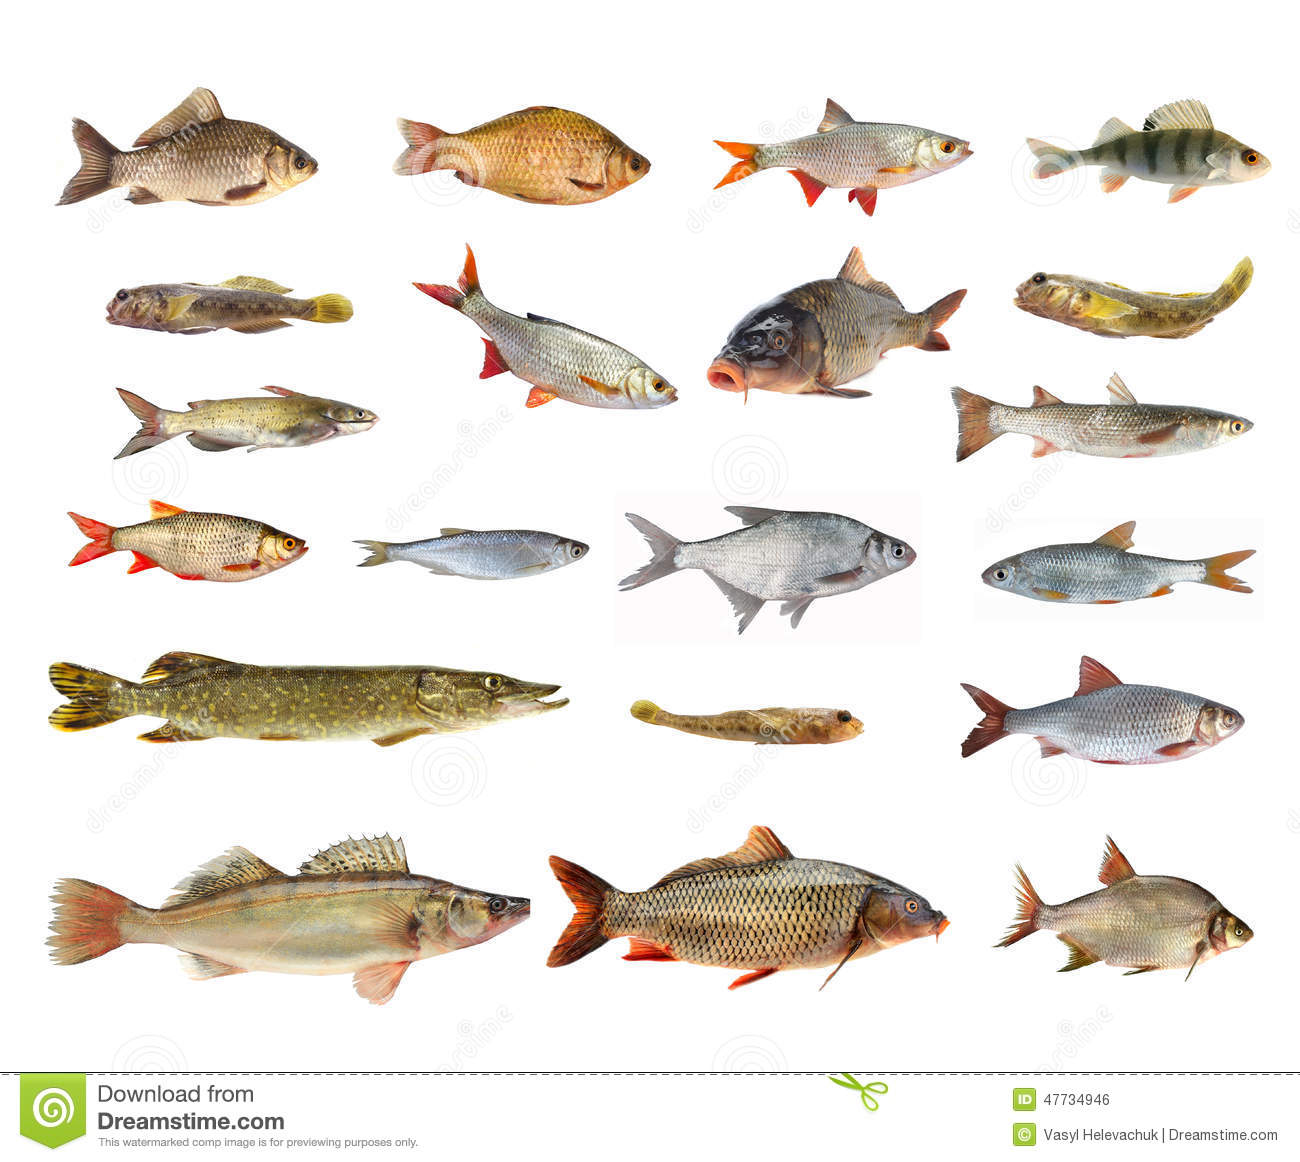 Esp ces des poissons de rivi re photo stock image 47734946 for Fische arten